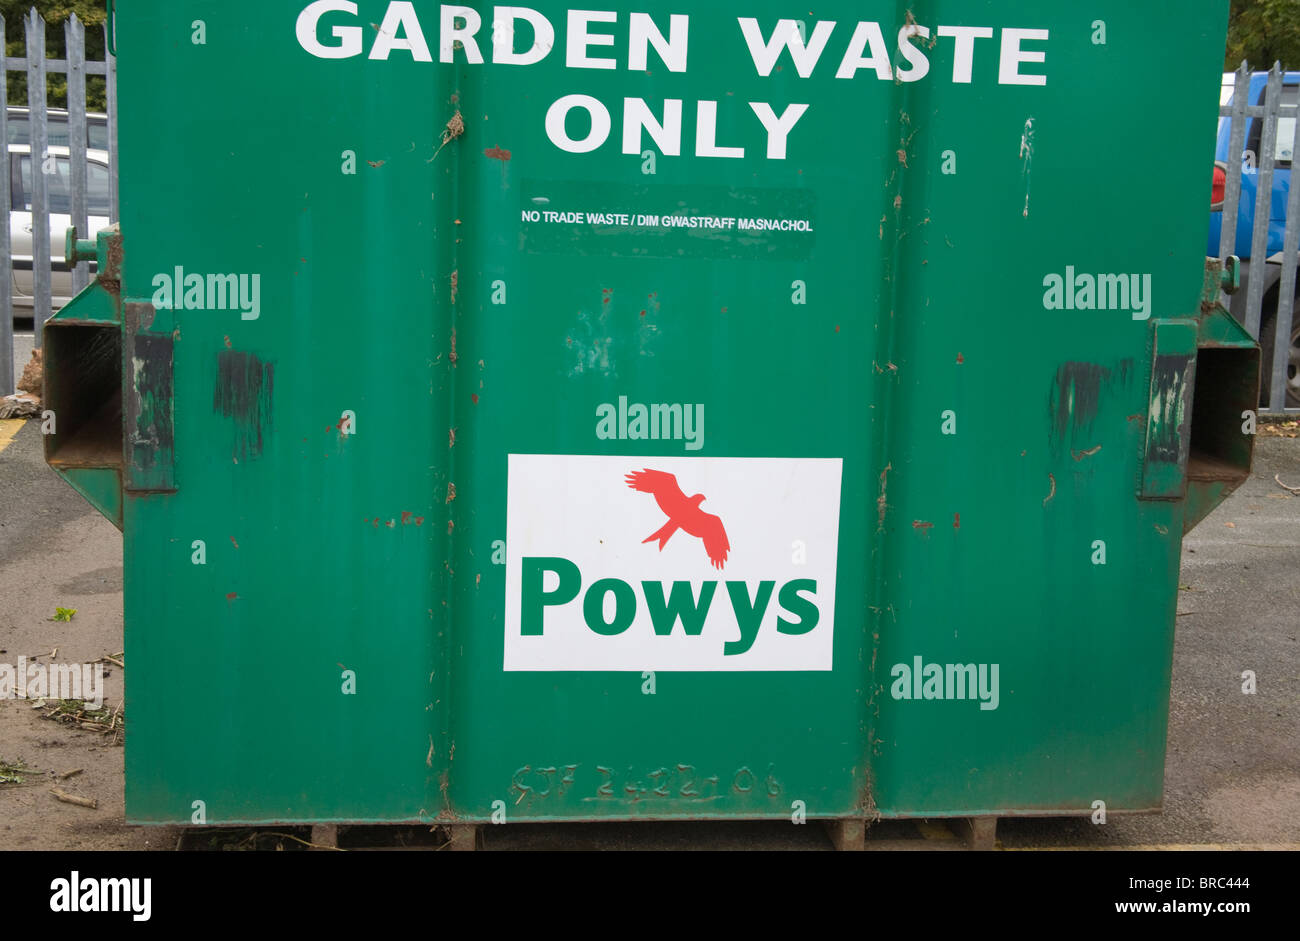 Powys Wales UK Container for recycling garden waste Stock Photo